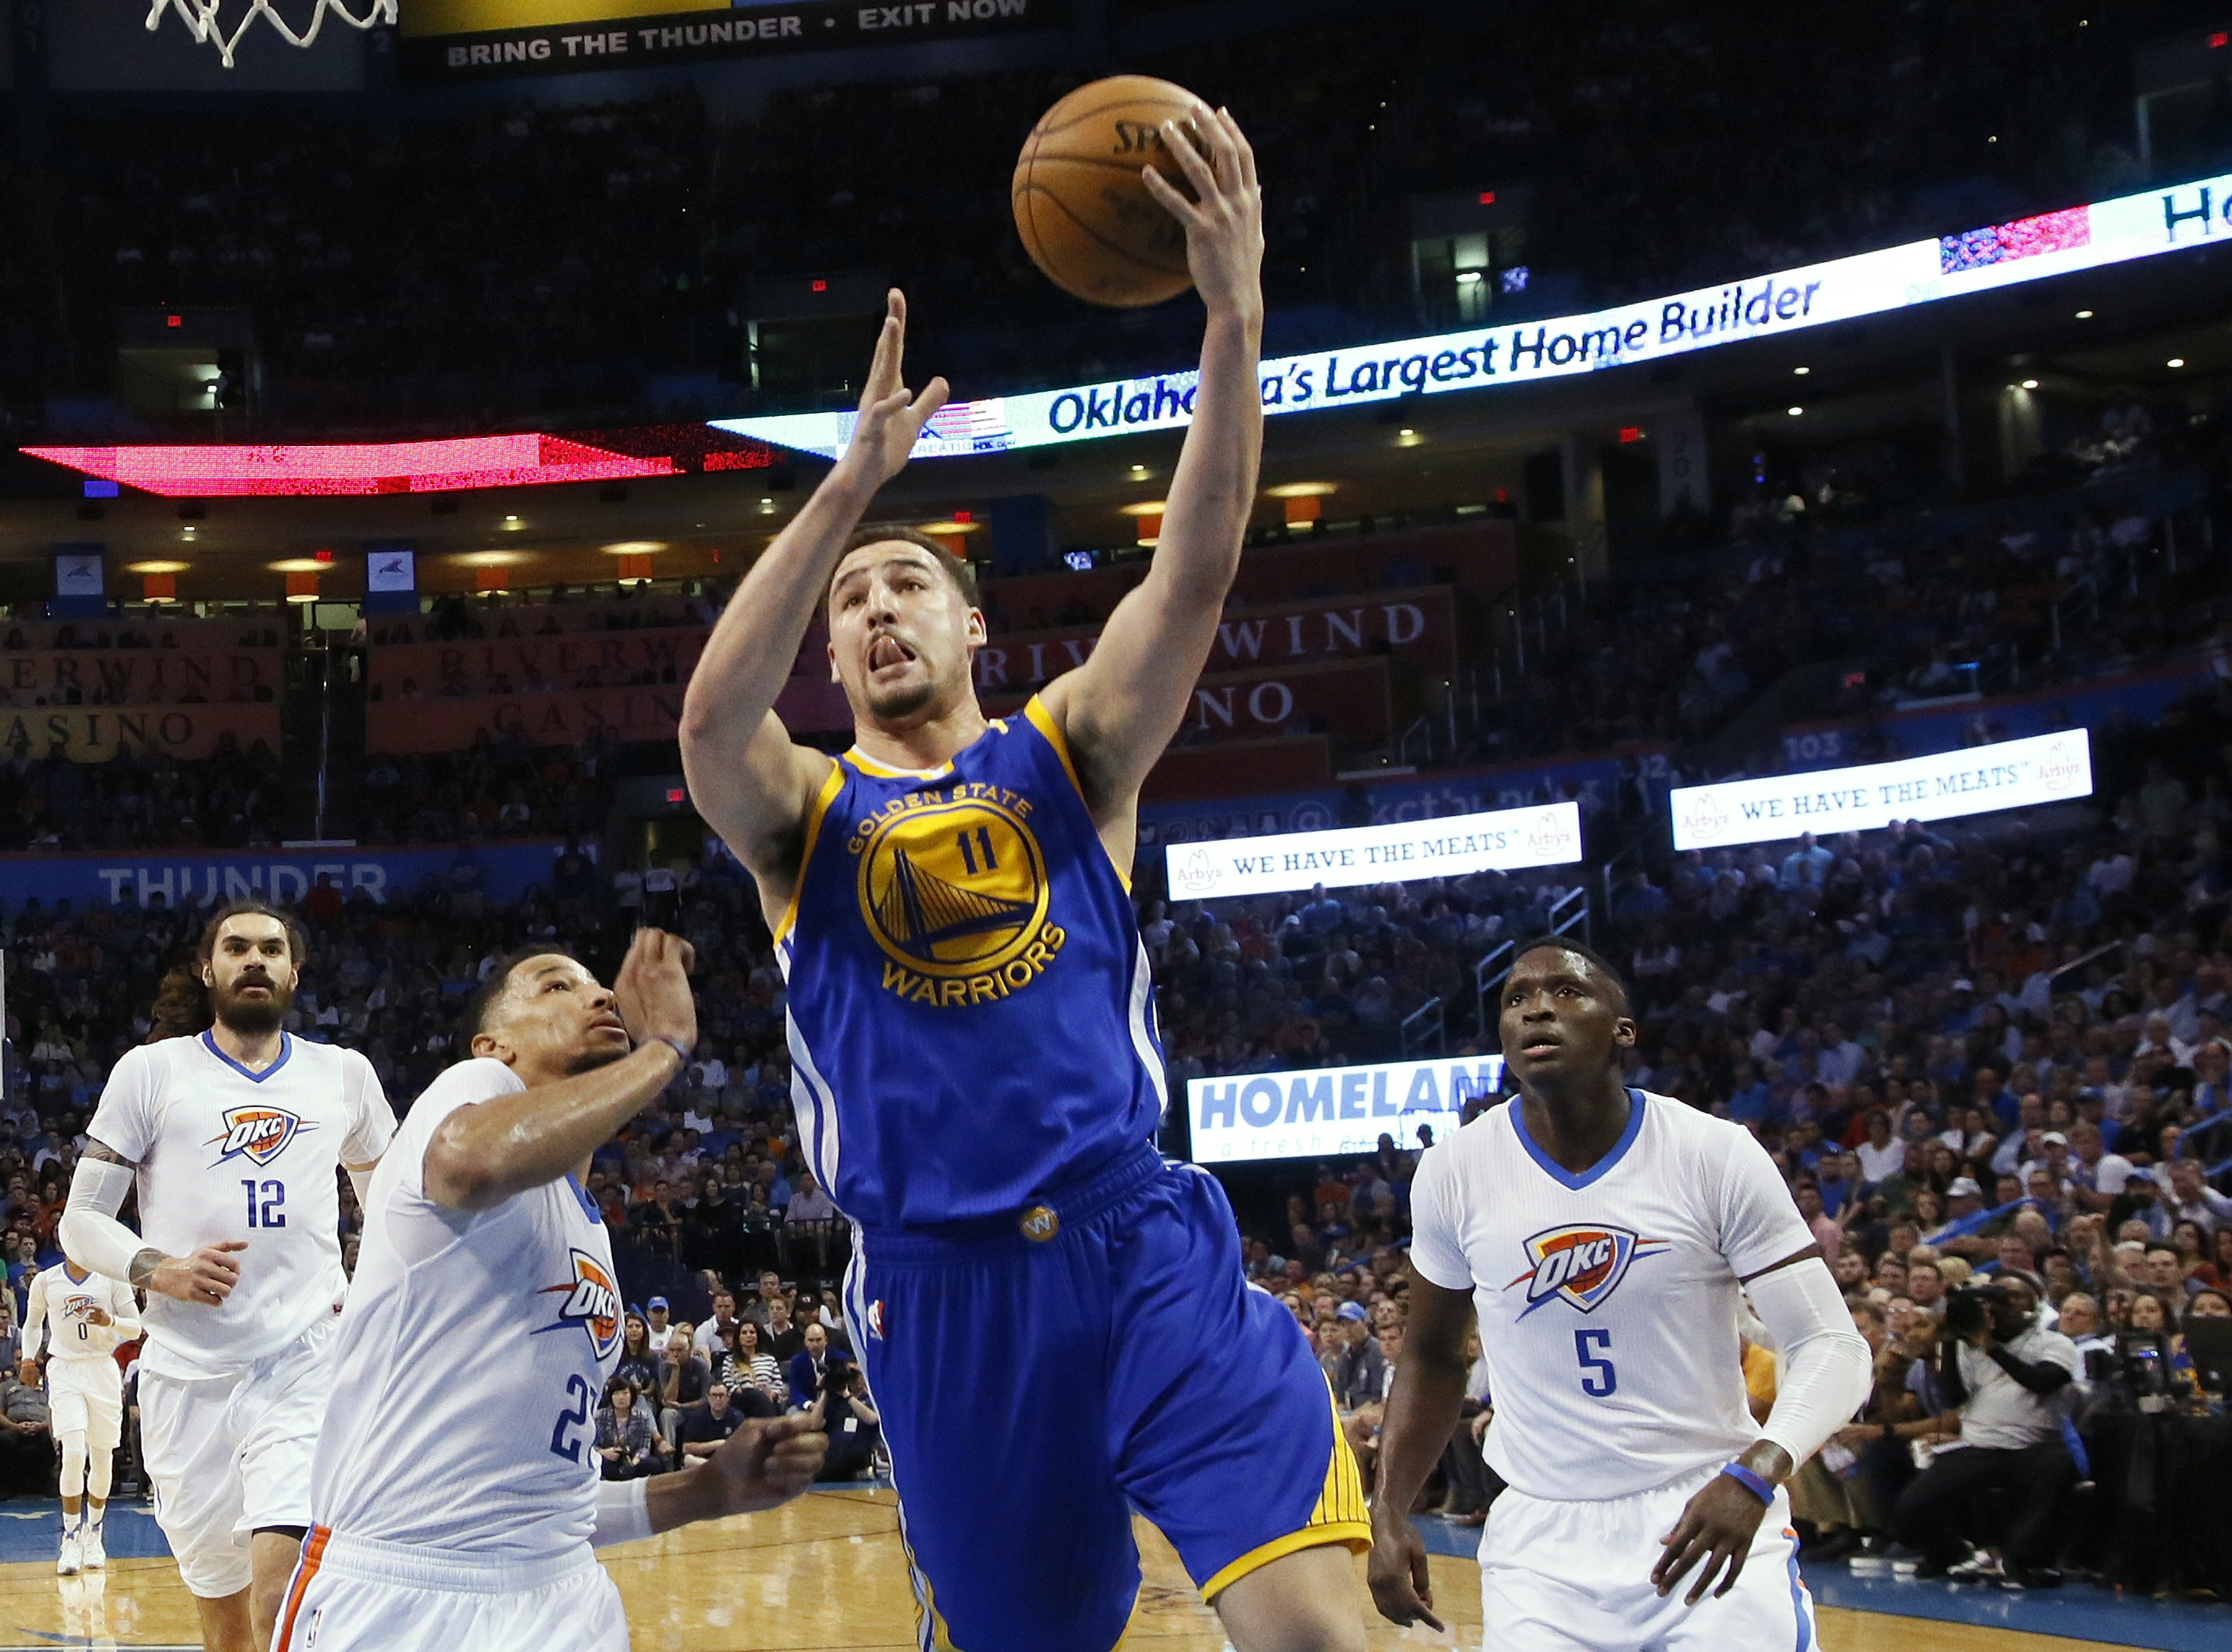 Golden State Warriors guard Klay Thompson (11) shoots between Oklahoma City Thunder forward Andre Roberson (21) and guard Victor Oladipo (5) during the first quarter of their NBA basketball game in Oklahoma City, Monday, March 20. (AP Photo/Sue Ogrocki)